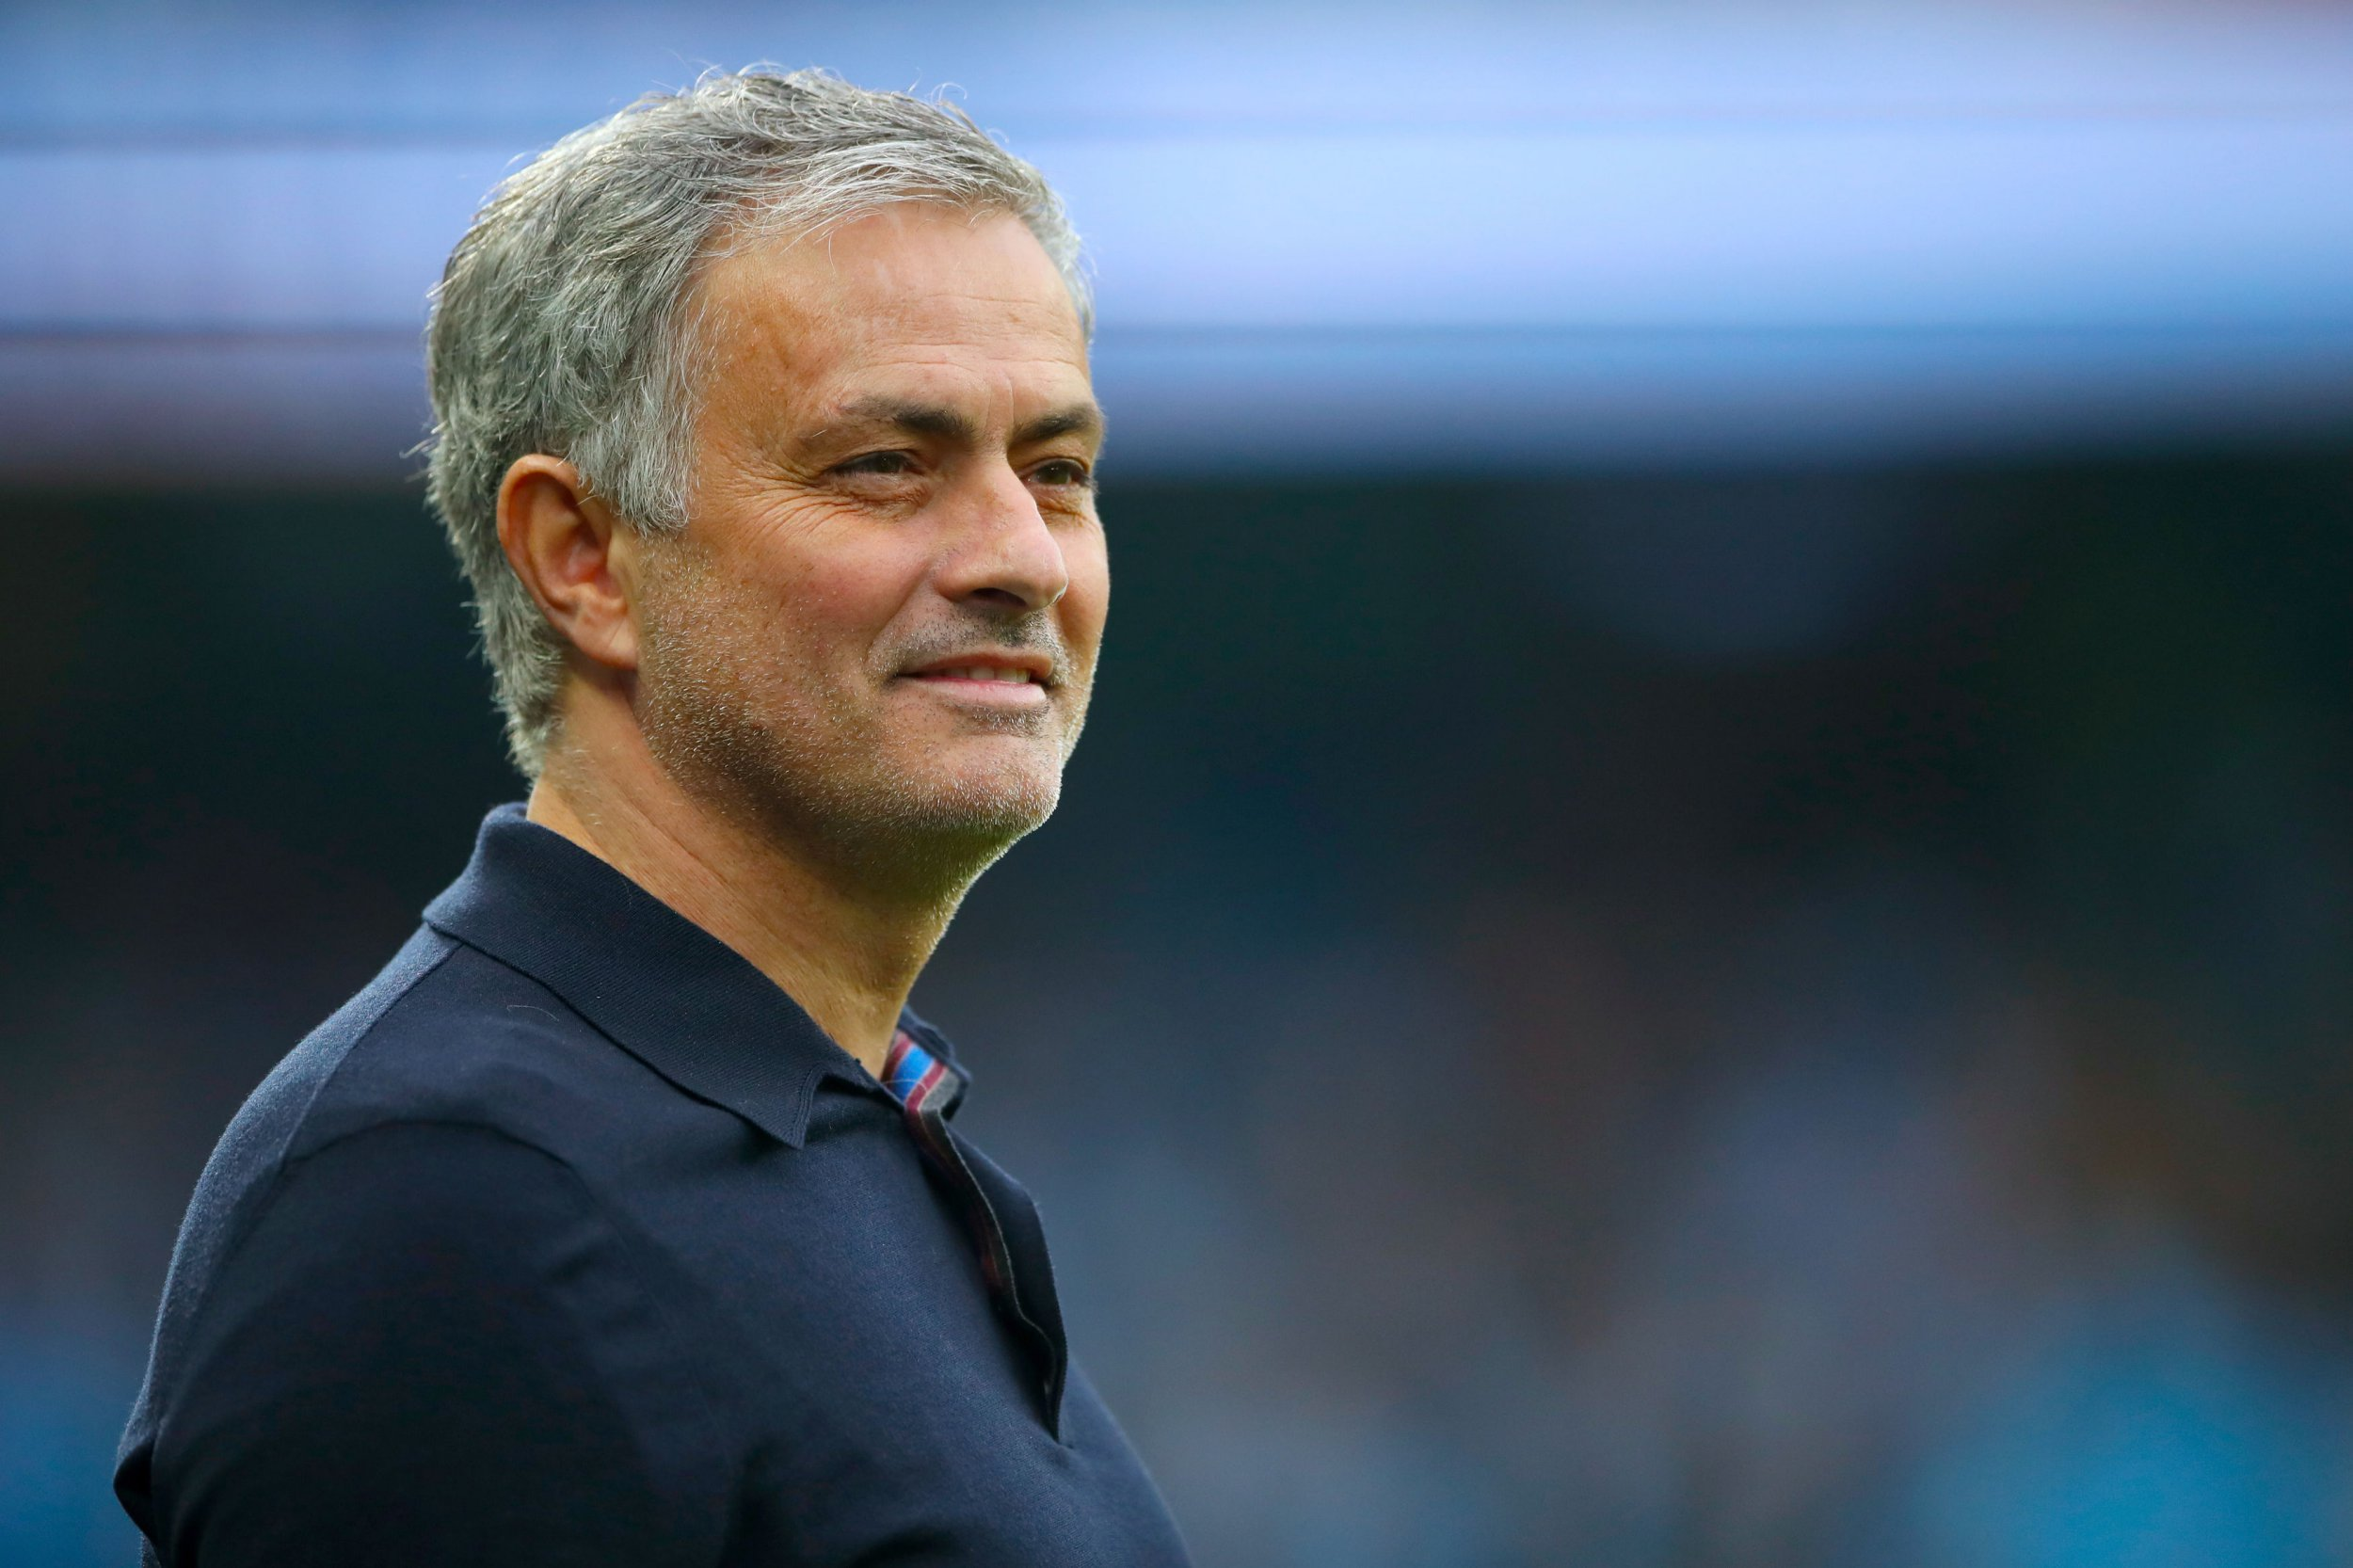 Jose Mourinho makes u-turn on new Manchester United assistant and says he's looking for two new people